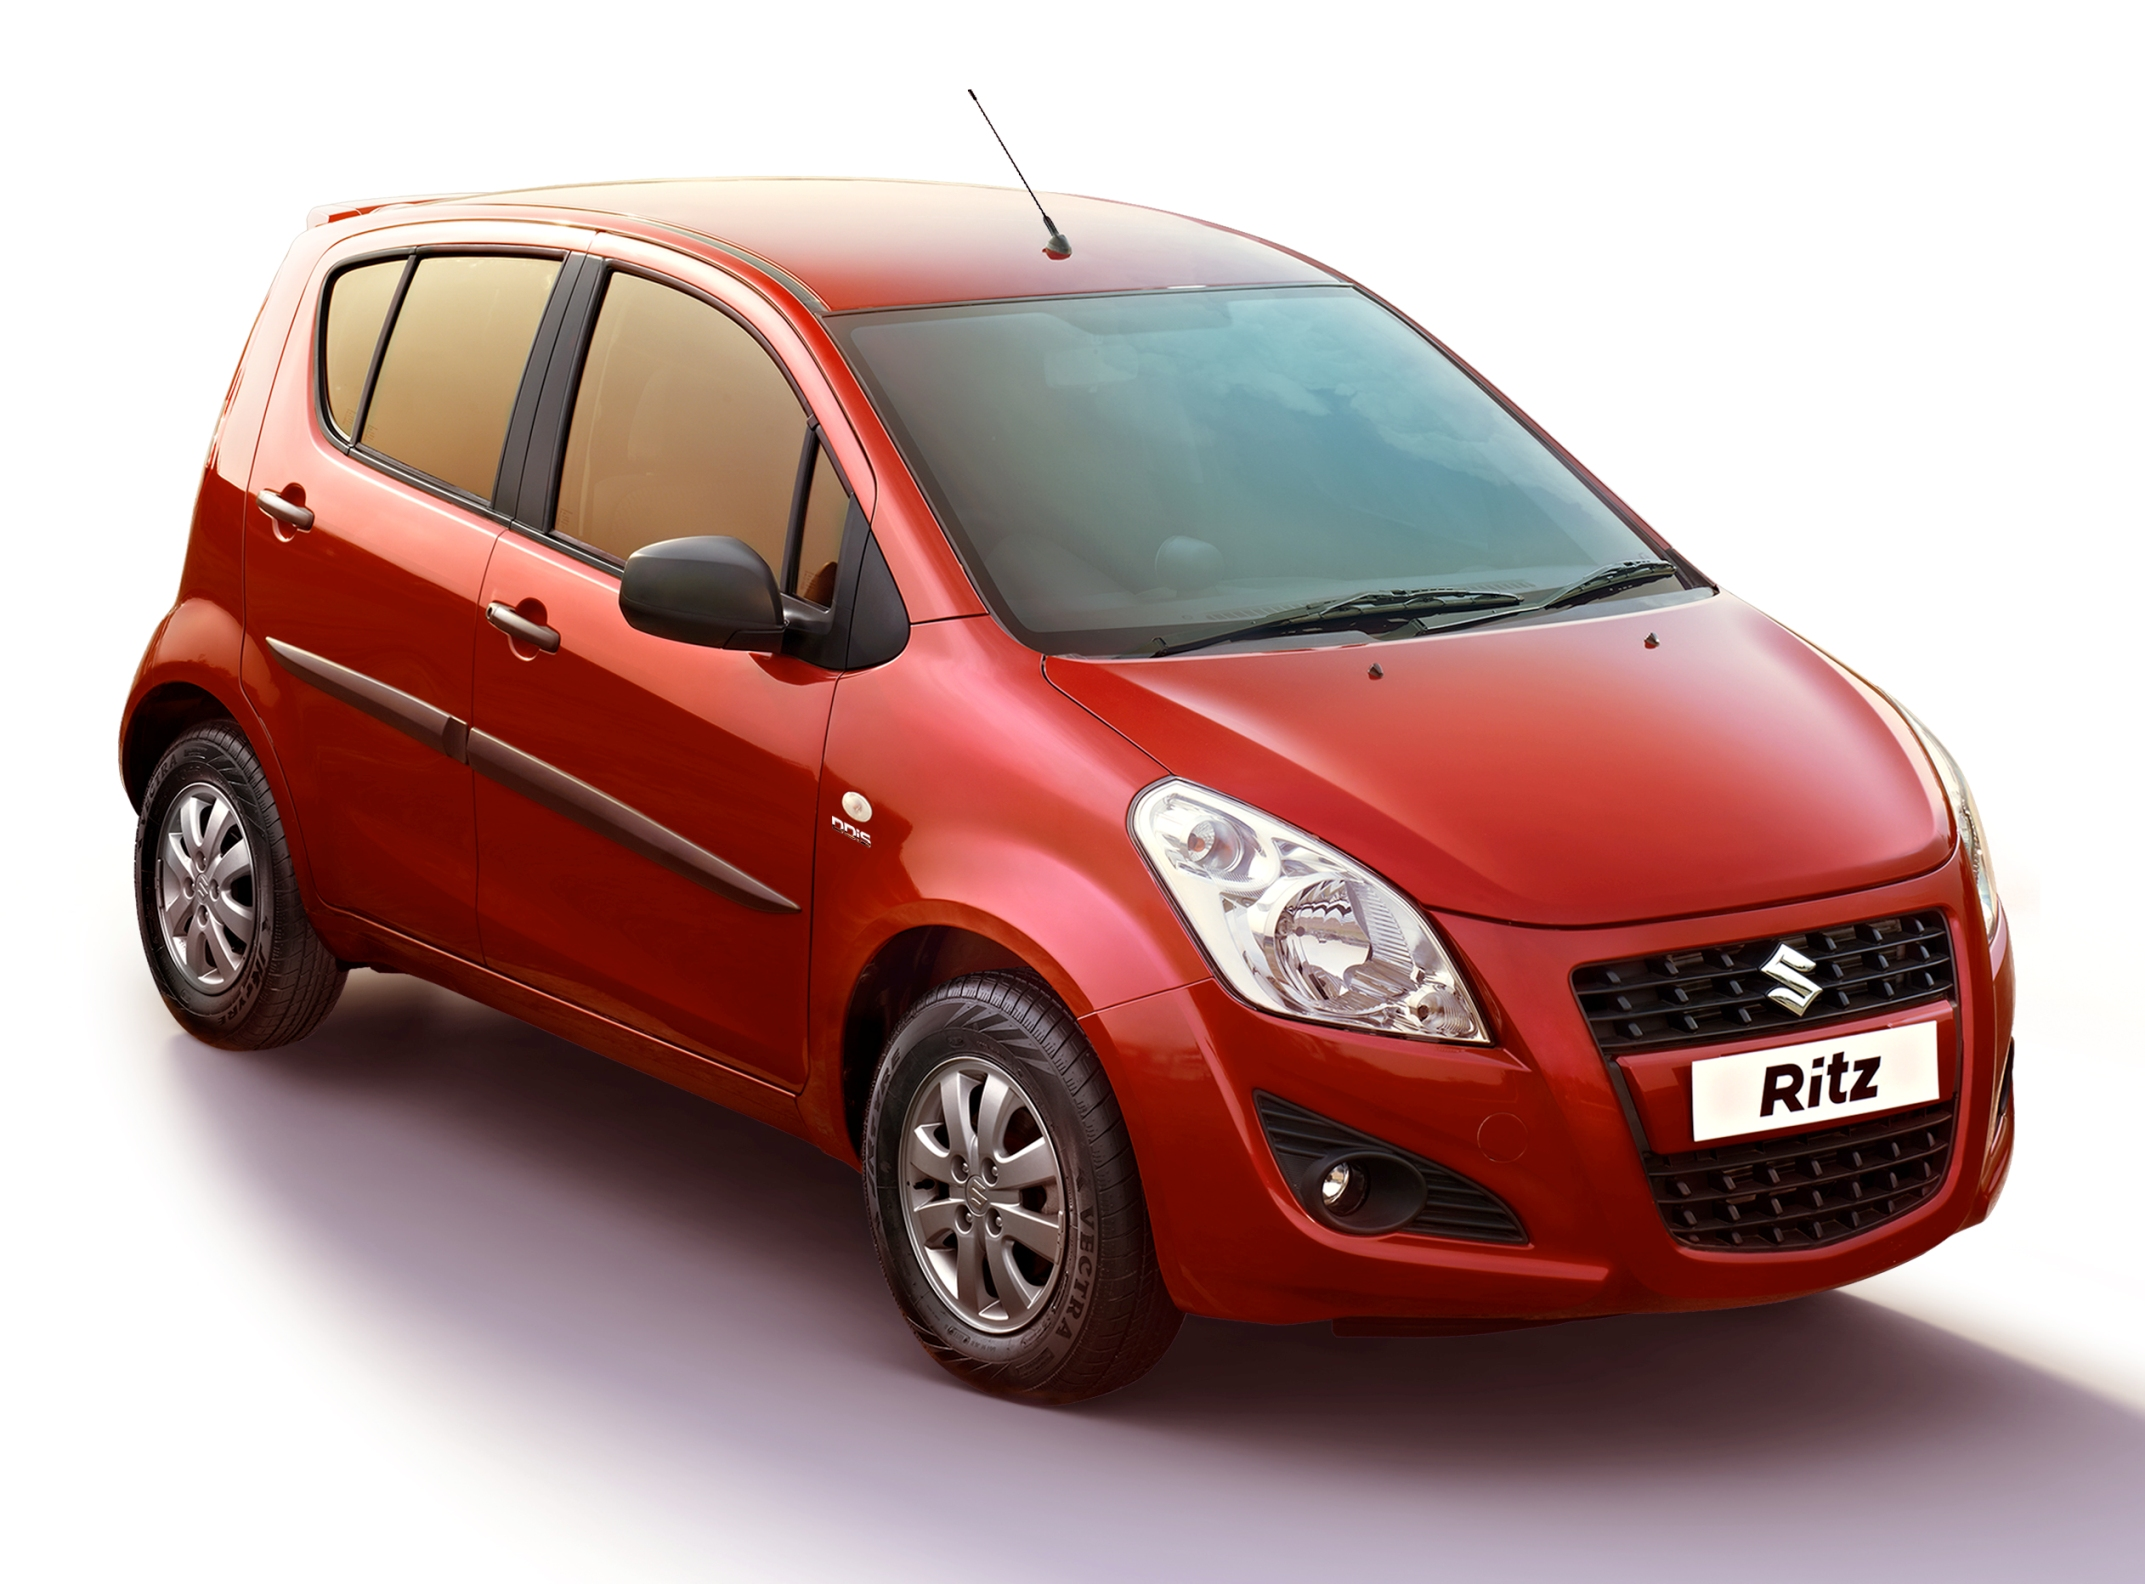 New_Maruti_Ritz_Pic